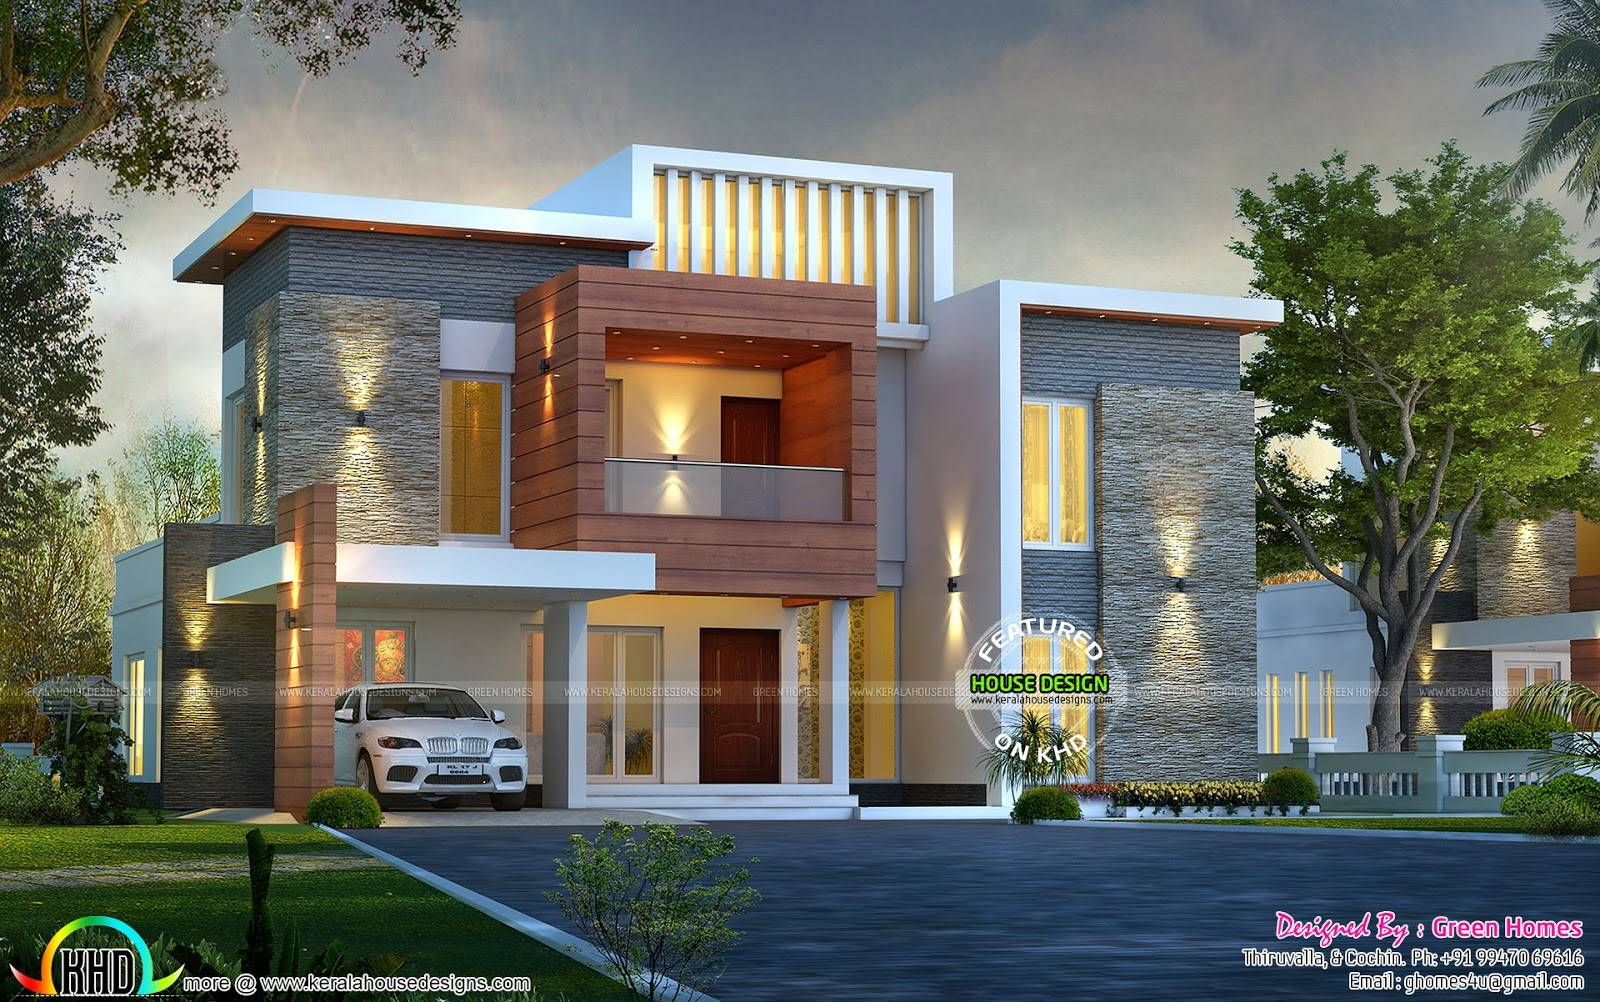 Awesome Contemporary Style Home Kerala - House Plans | #151085